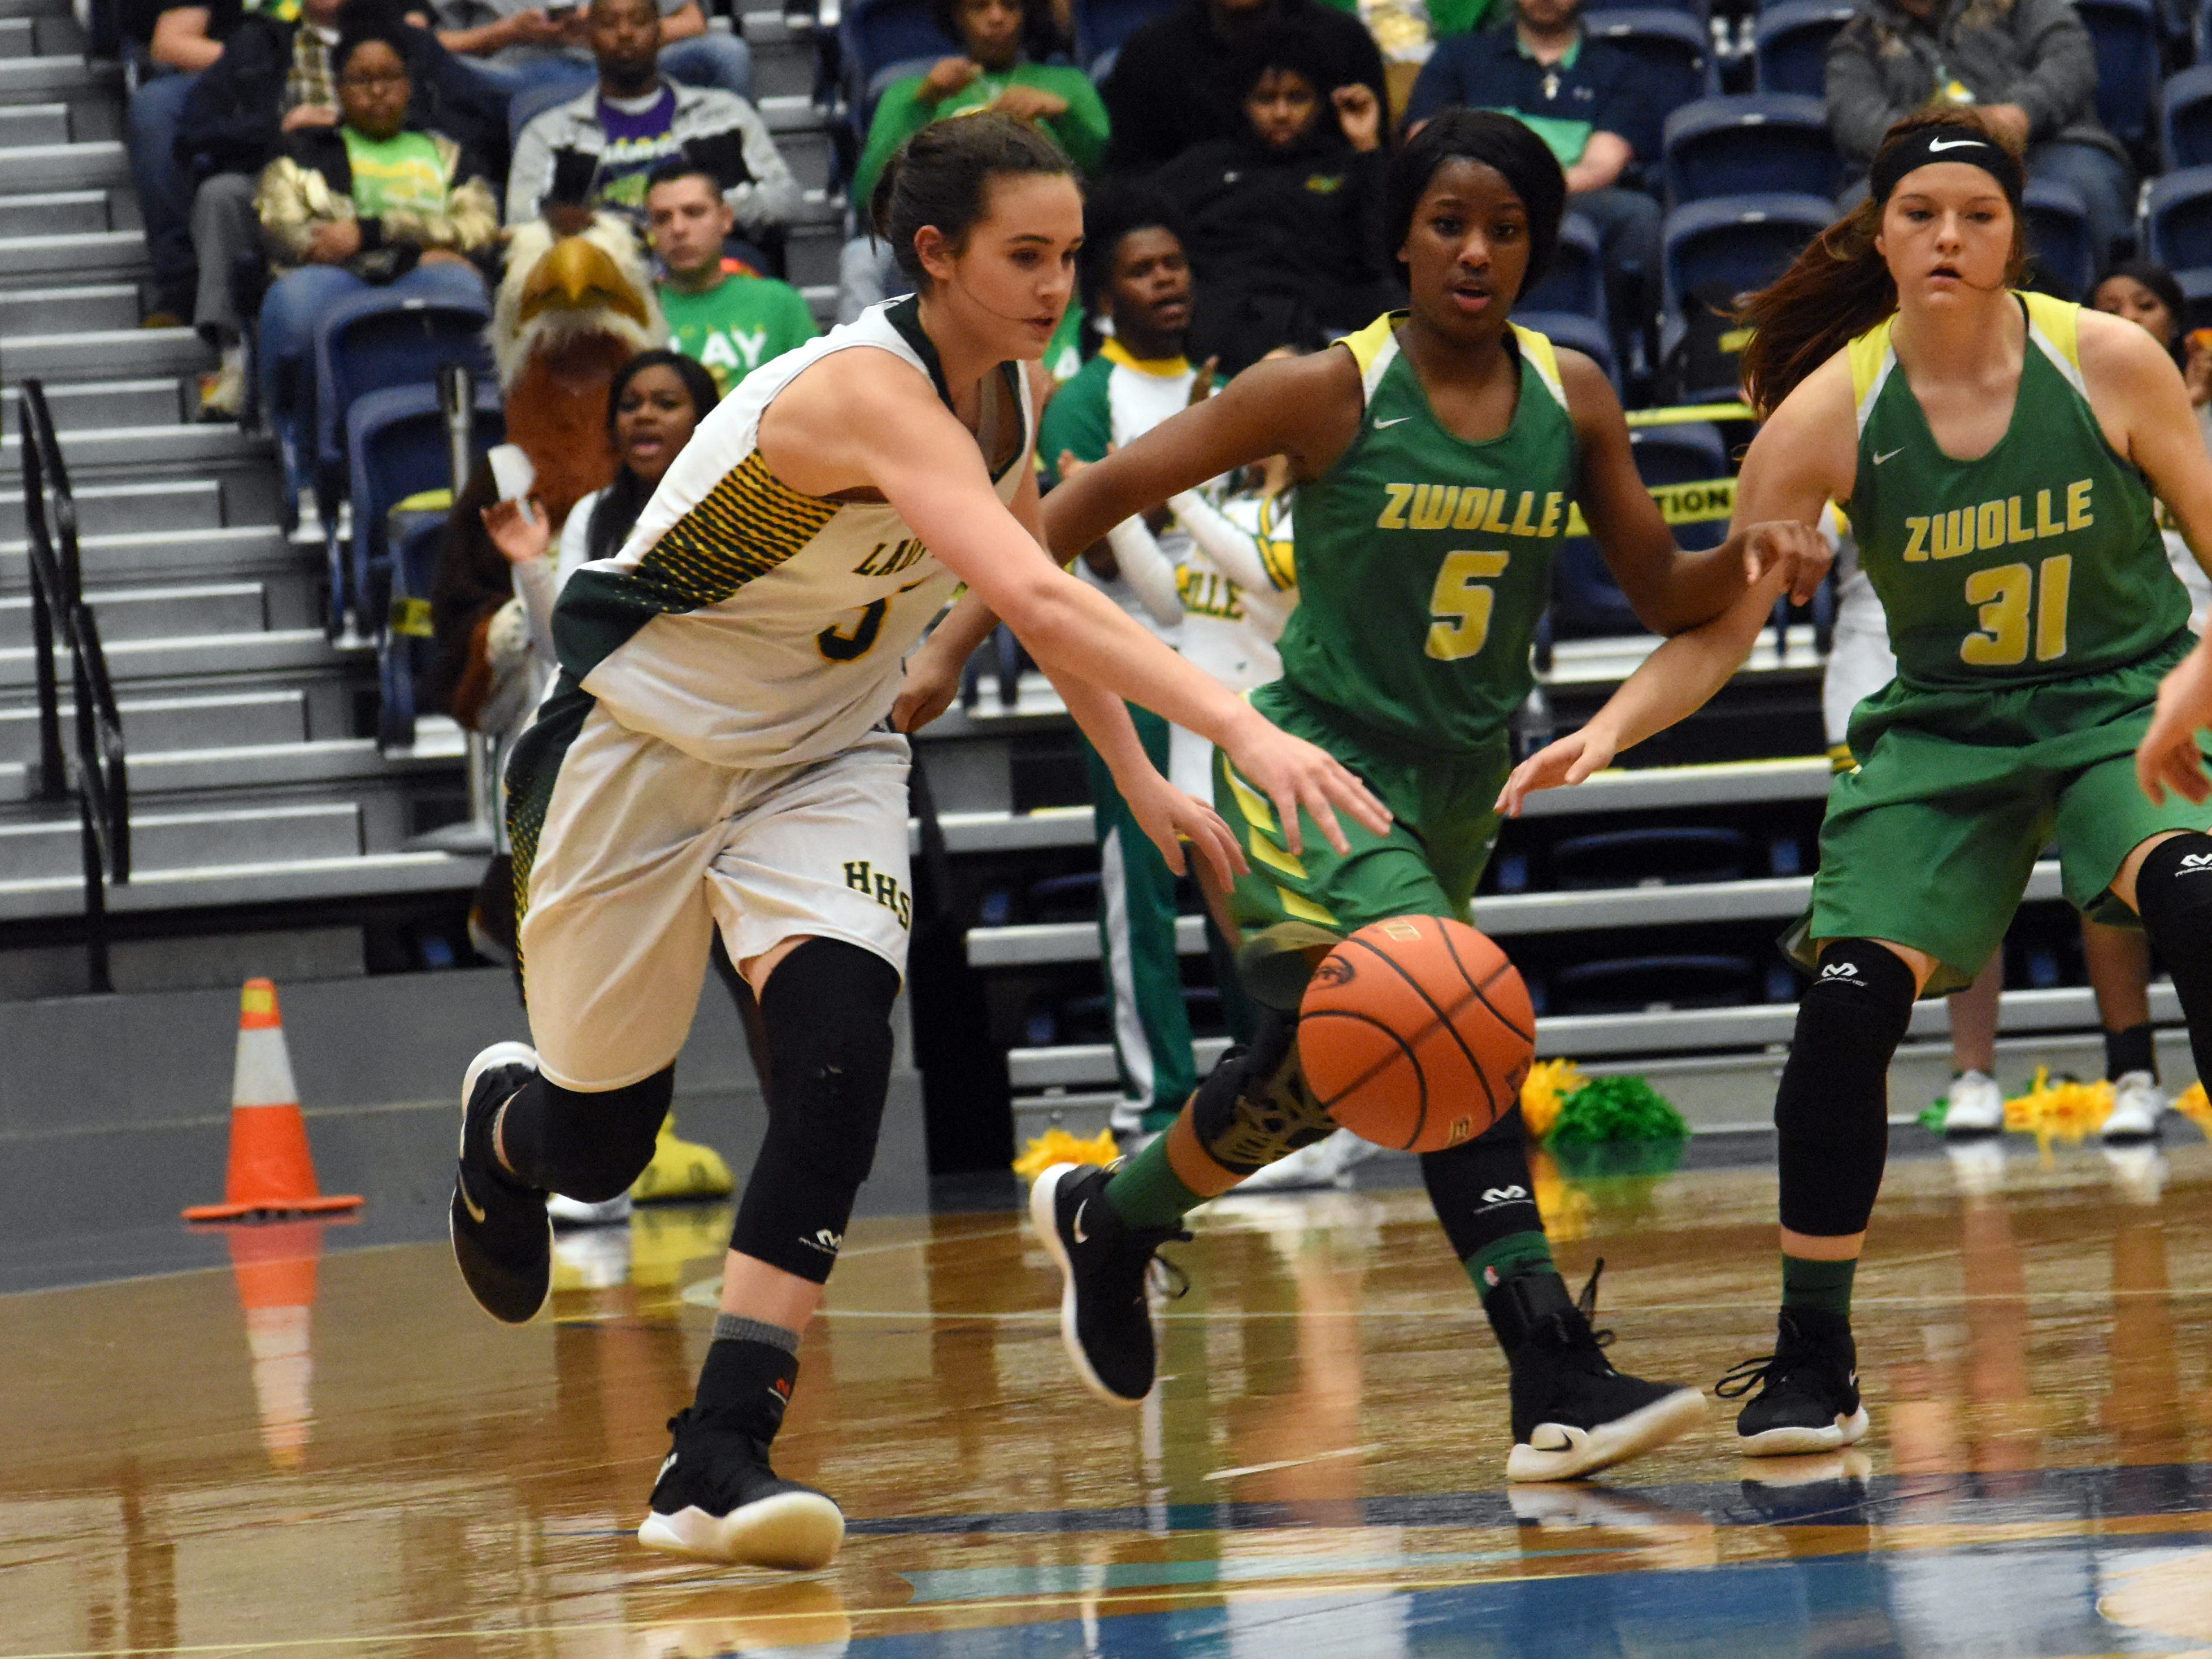 Hicks High School defeated Zwolle High School 58-49 in the semifinals of the Class B 2019 Allstate Sugar Bowl LHSAA girls' State Basketball Marsh Madness Tournament held Wednesday, Feb. 27, 2019 at the Rapides Parish Coliseum. Hicks advances to the state championship tournament against Anacoco High School.